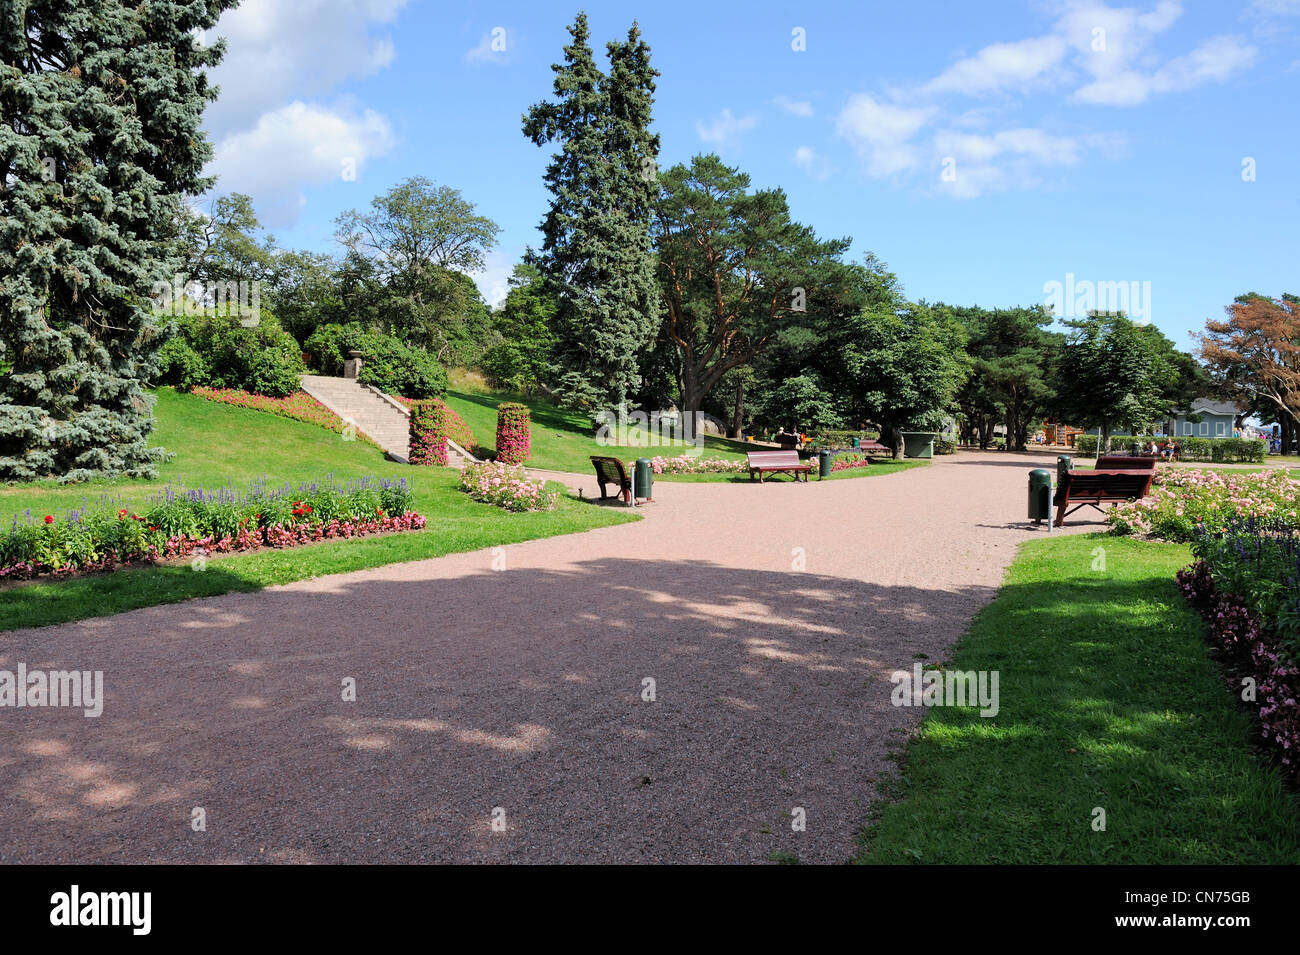 Church park of Hanko town is an idyllic and quiet place with plenty of room to have a picnic and relaxing. Church - Stock Image